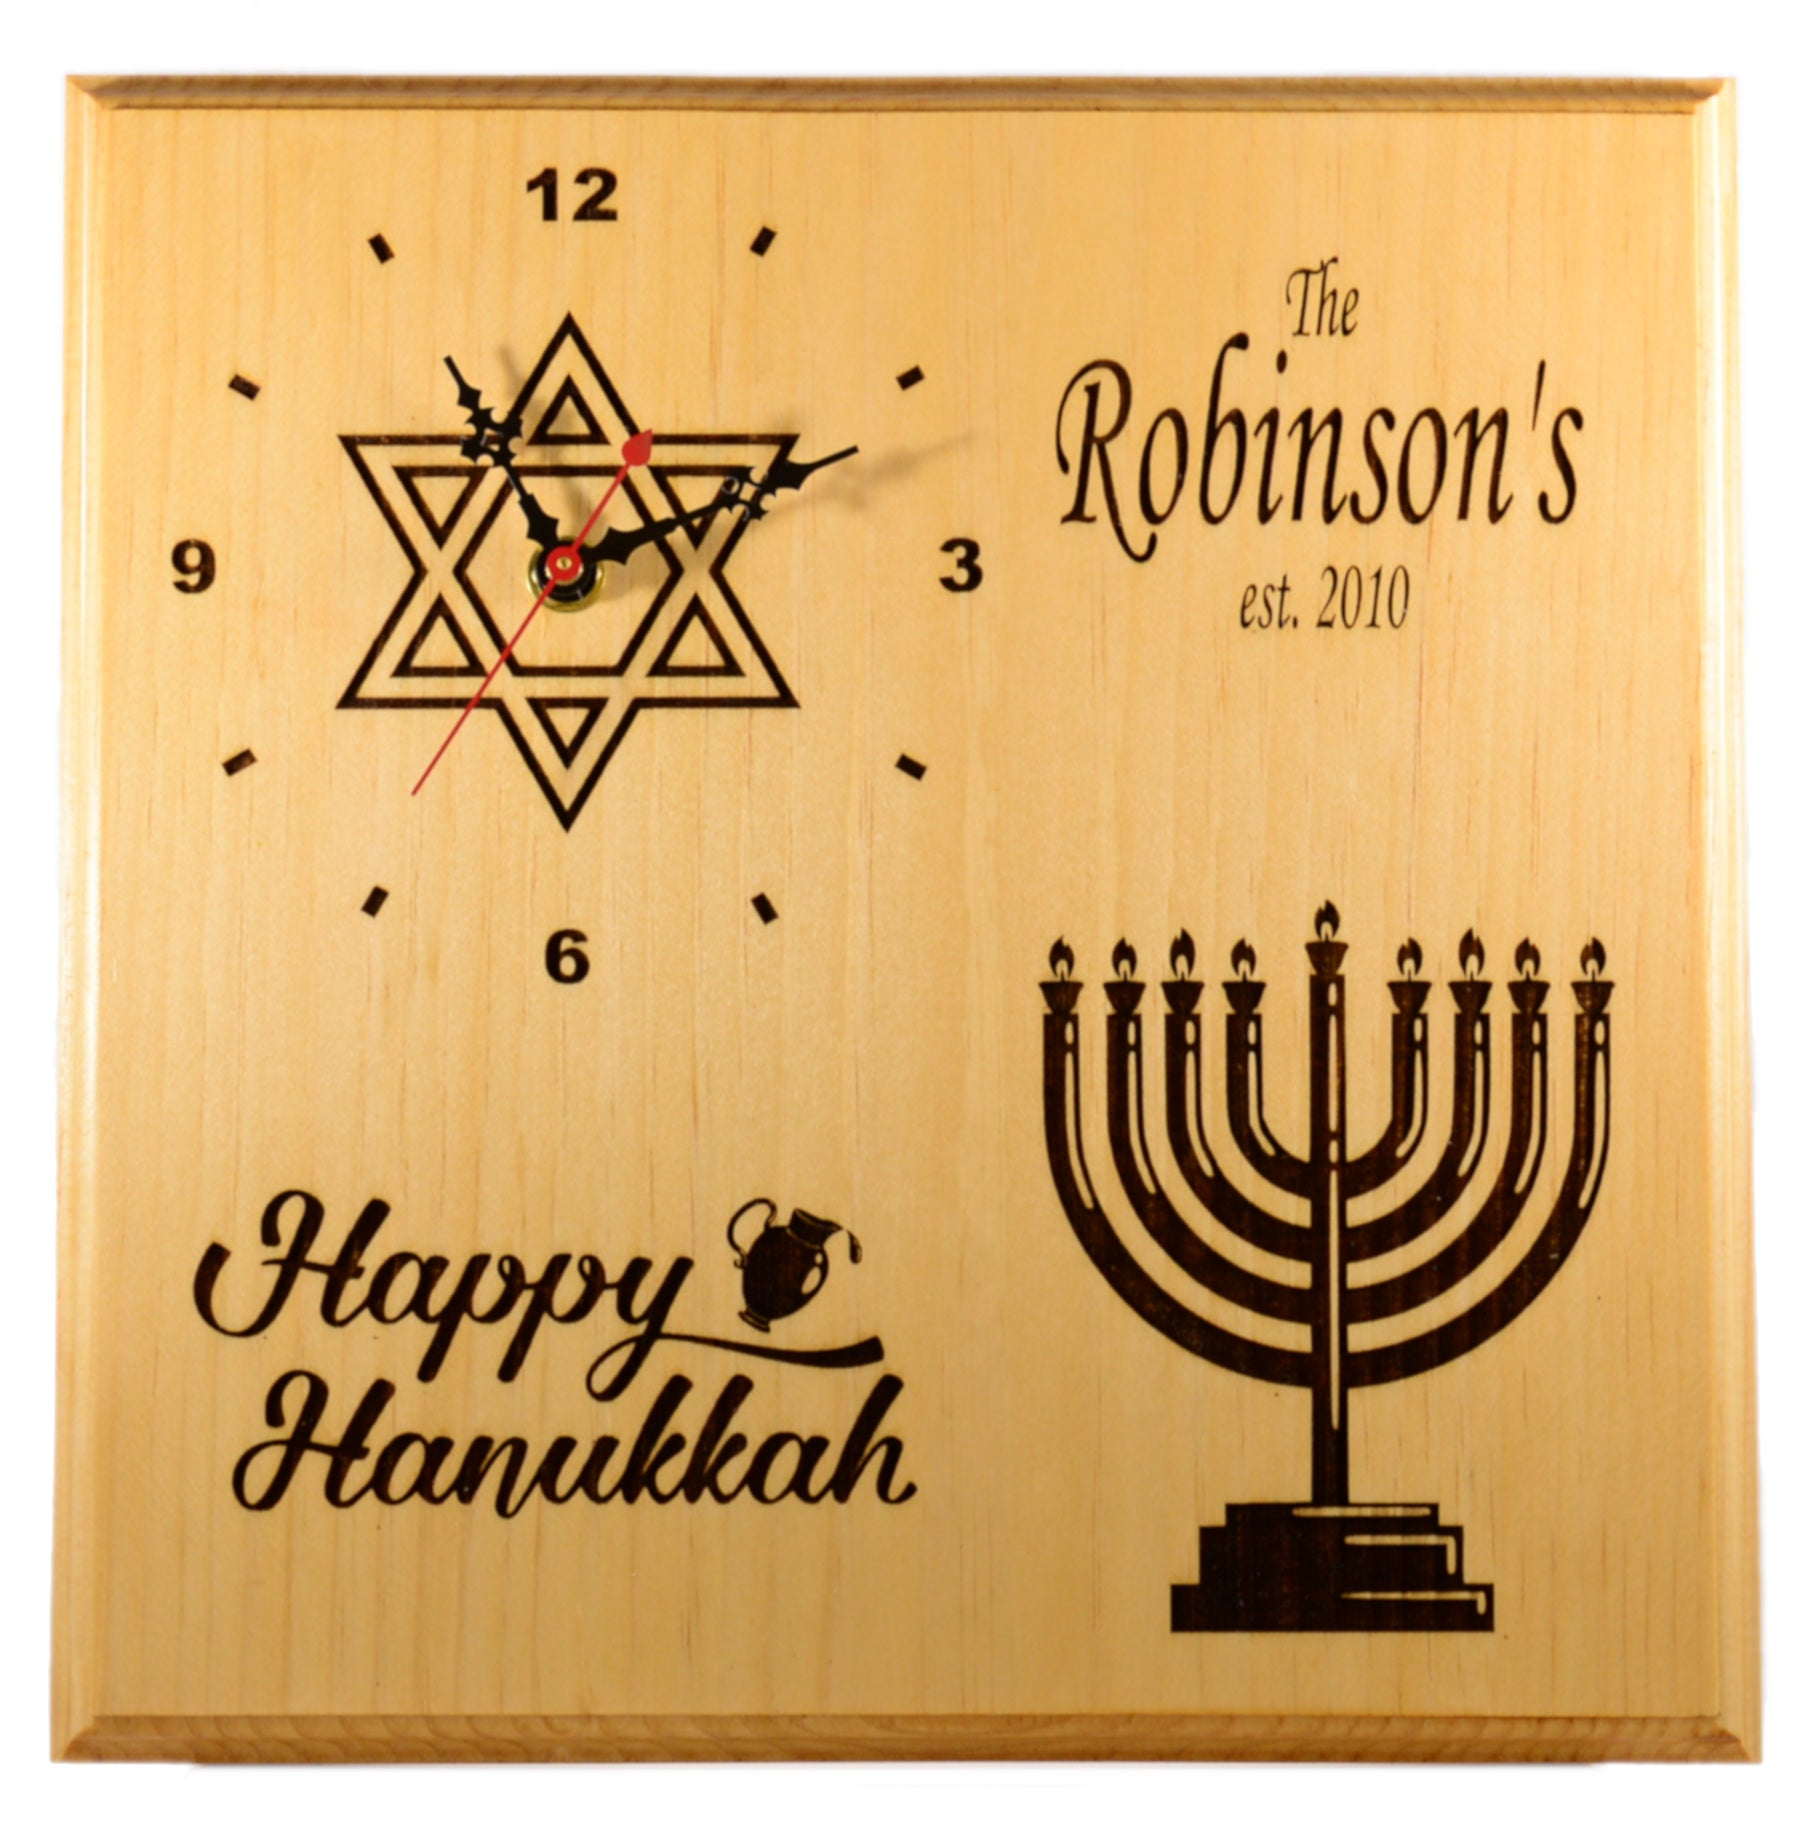 Personalized Holiday Hanukkah Clock -  Festival of Lights Holiday Home Decor Gift